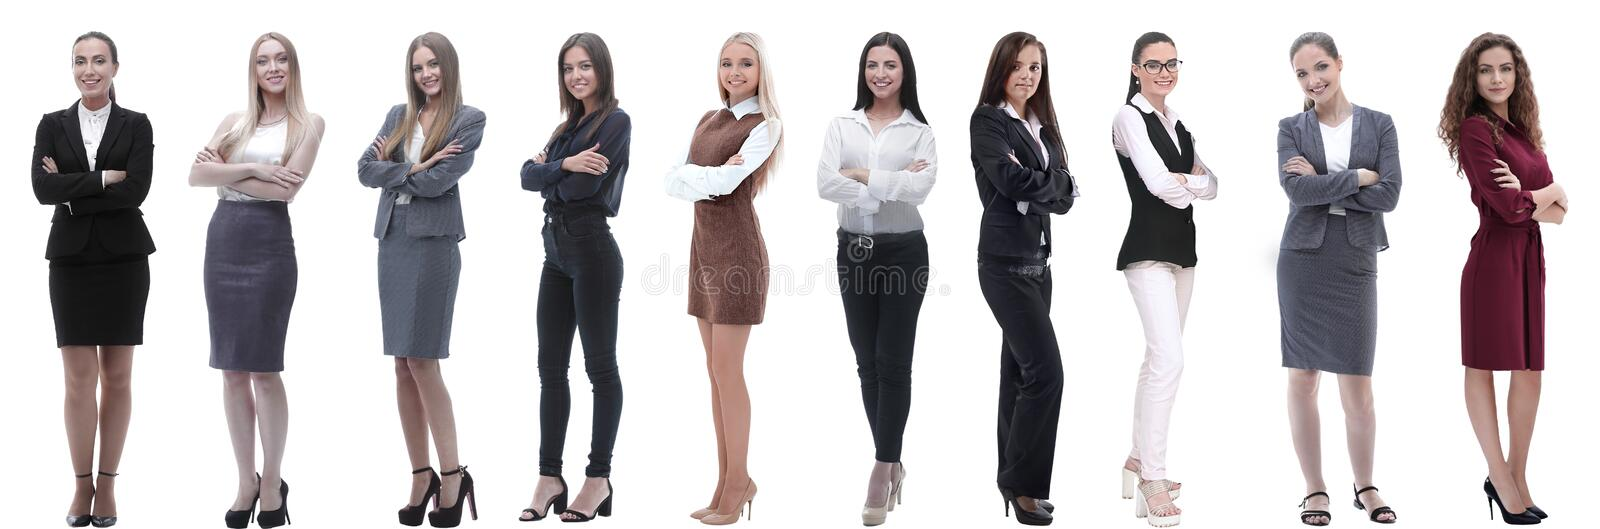 Panoramic collage of a group of successful young business women. stock photos